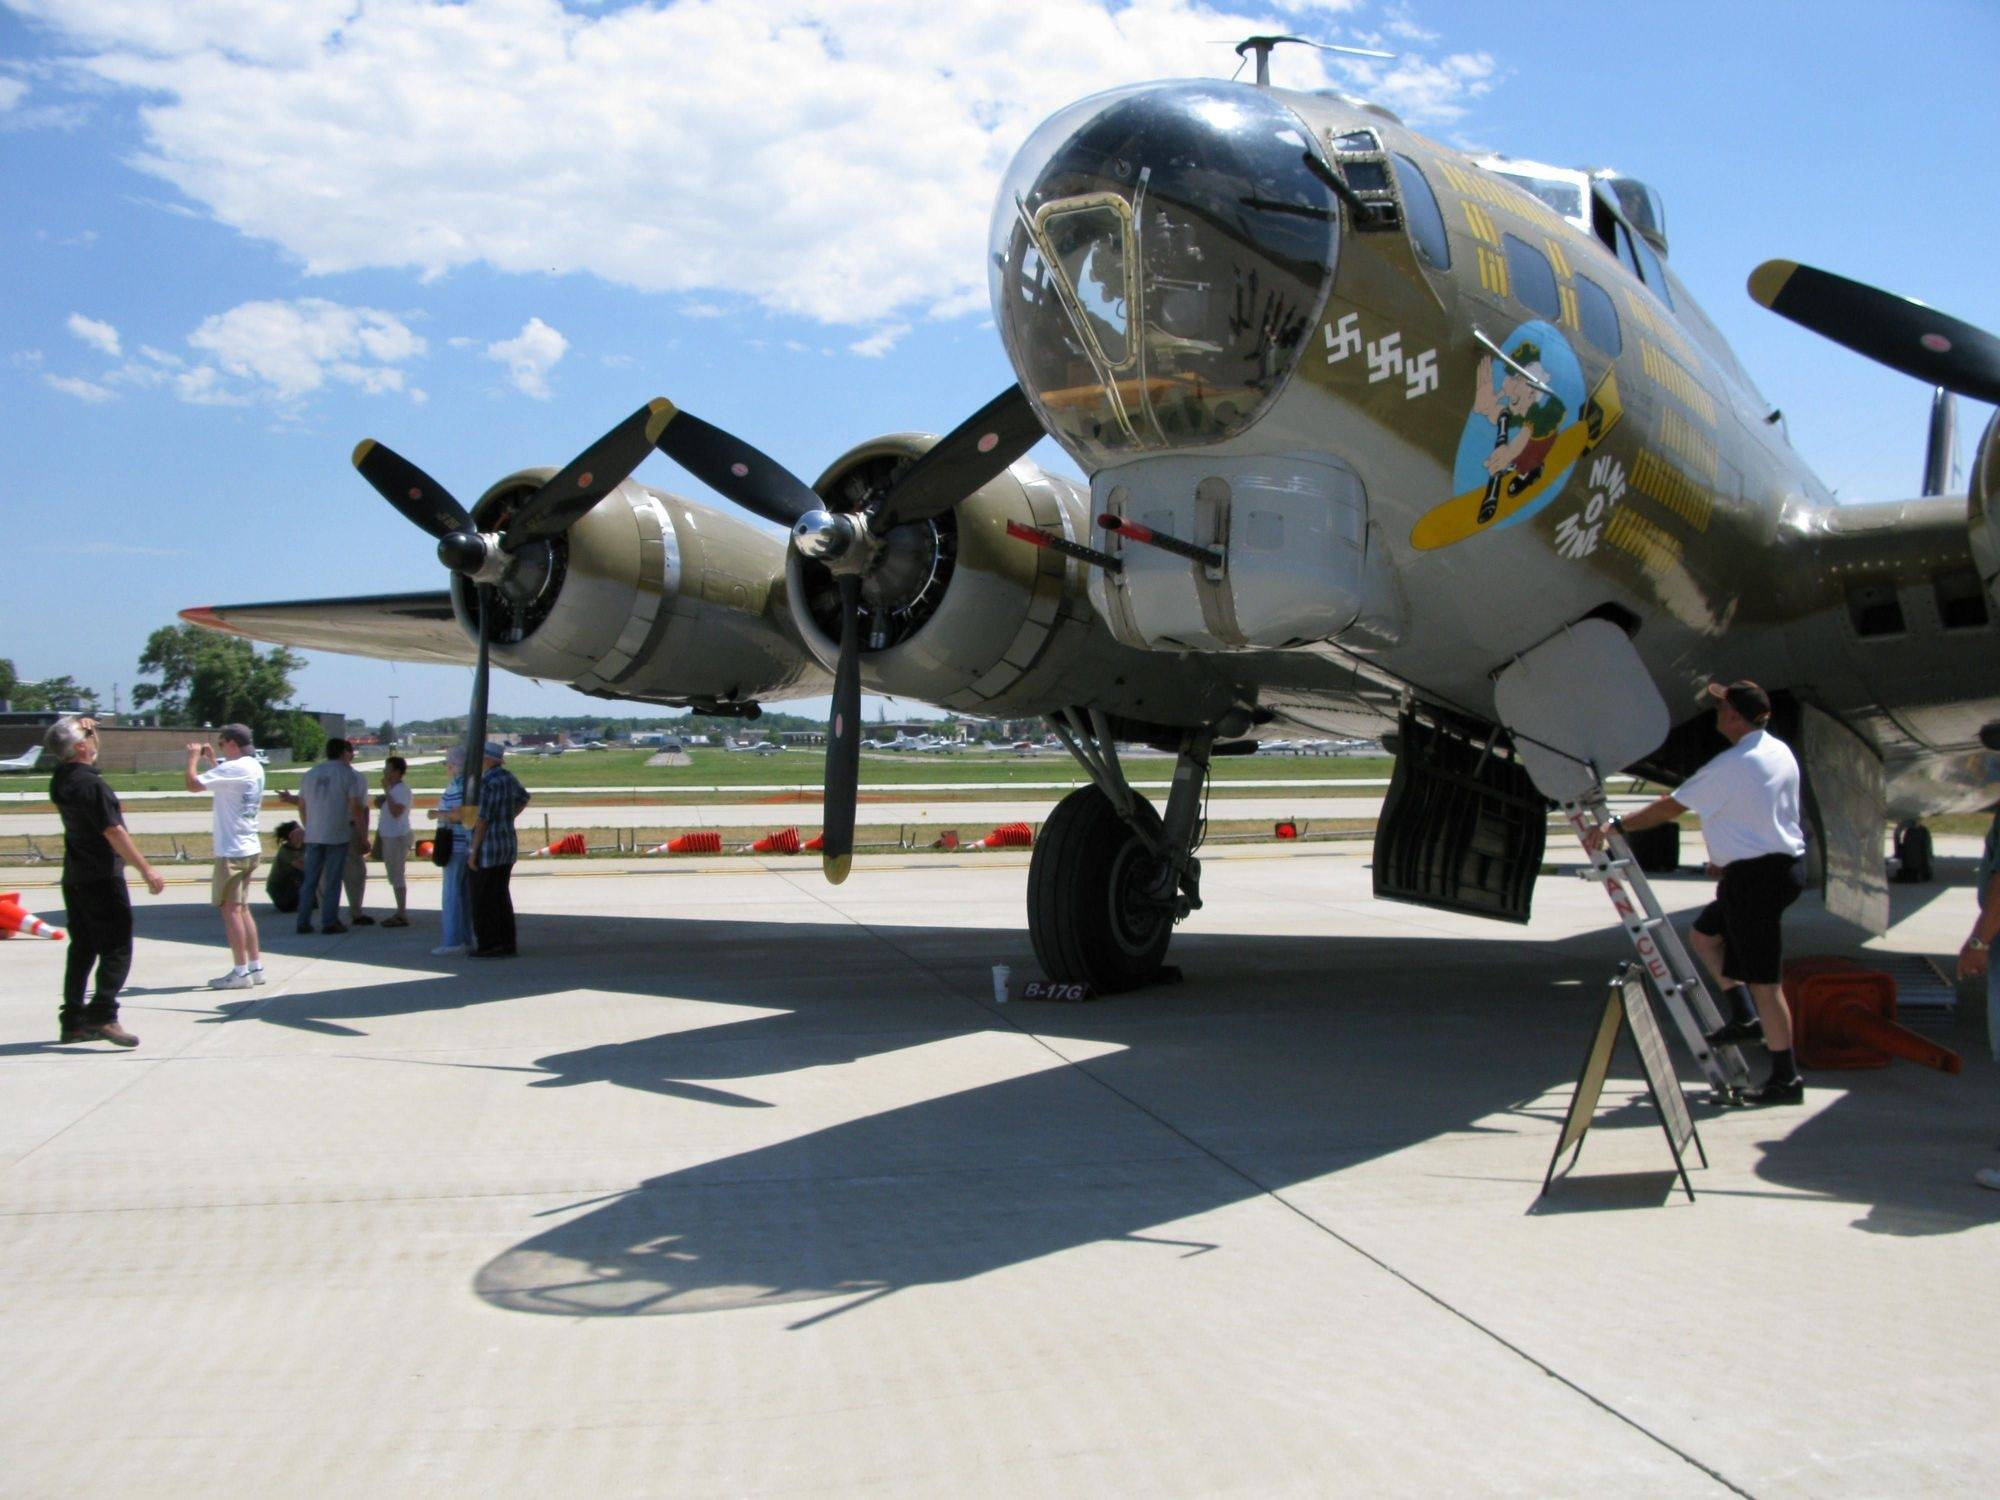 WWII planes at Wheeling airport all weekend